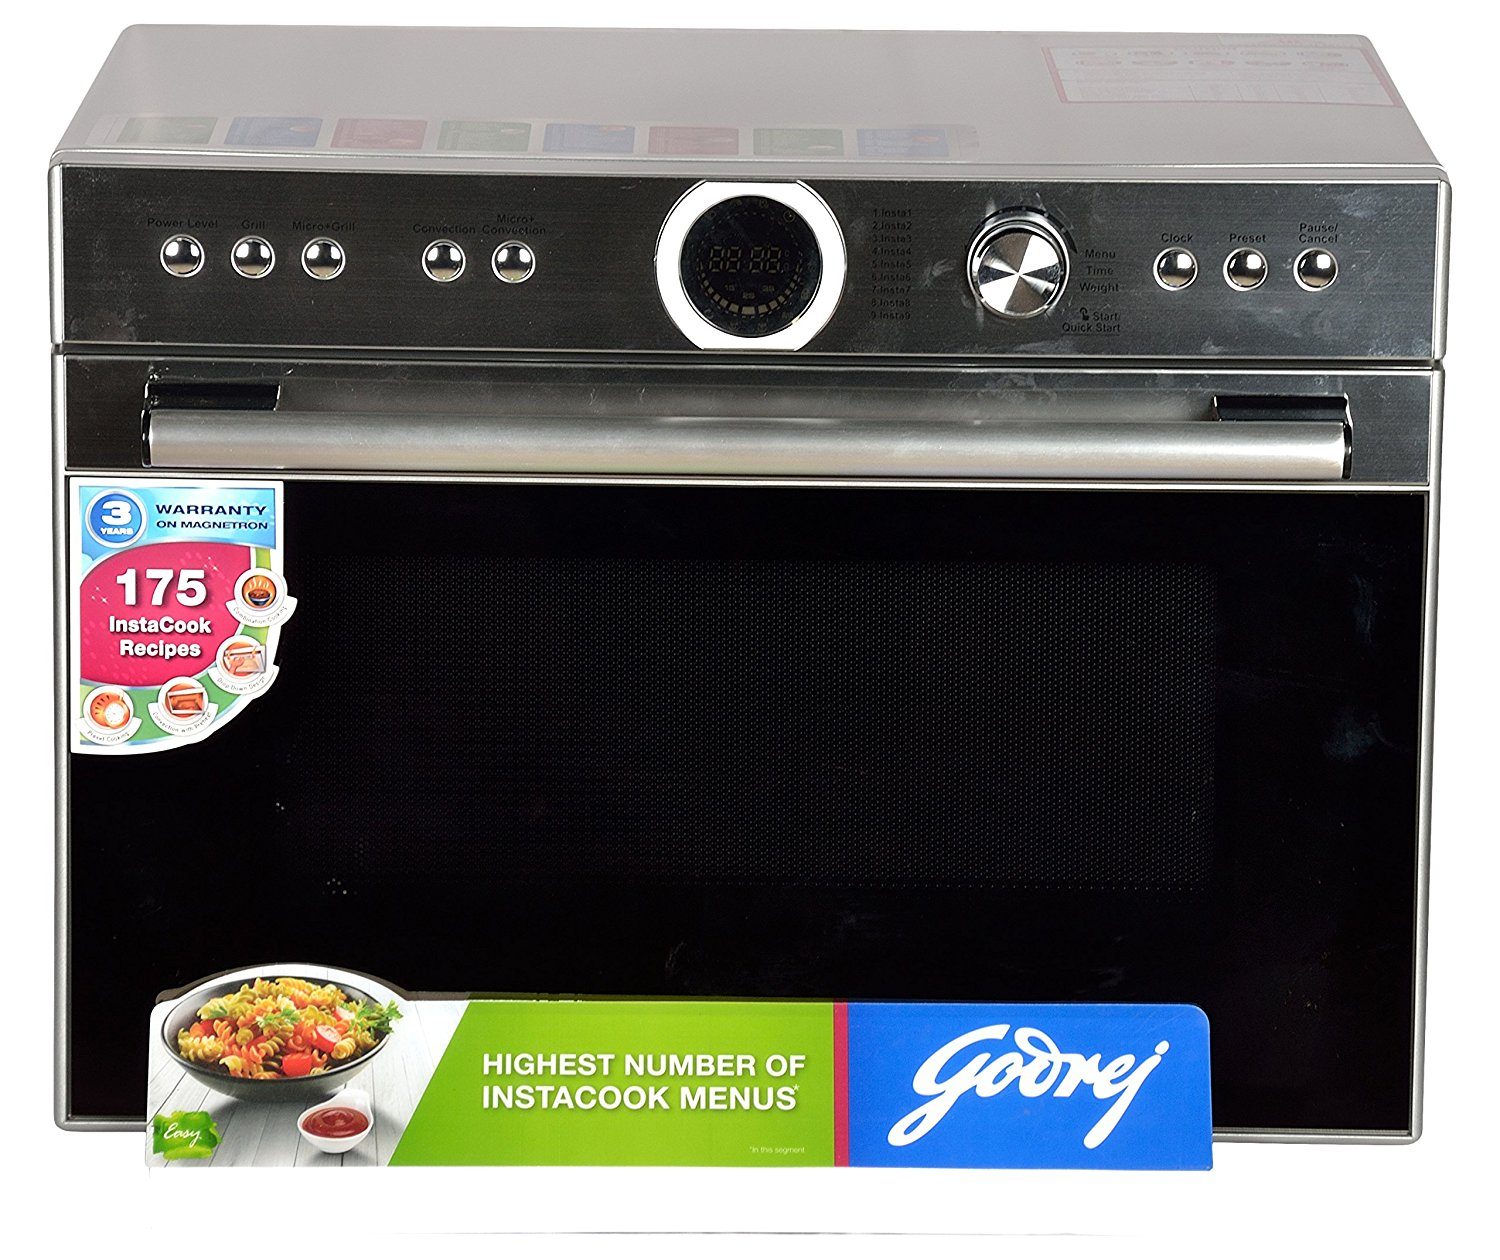 Godrej 34 liters convection microwave oven